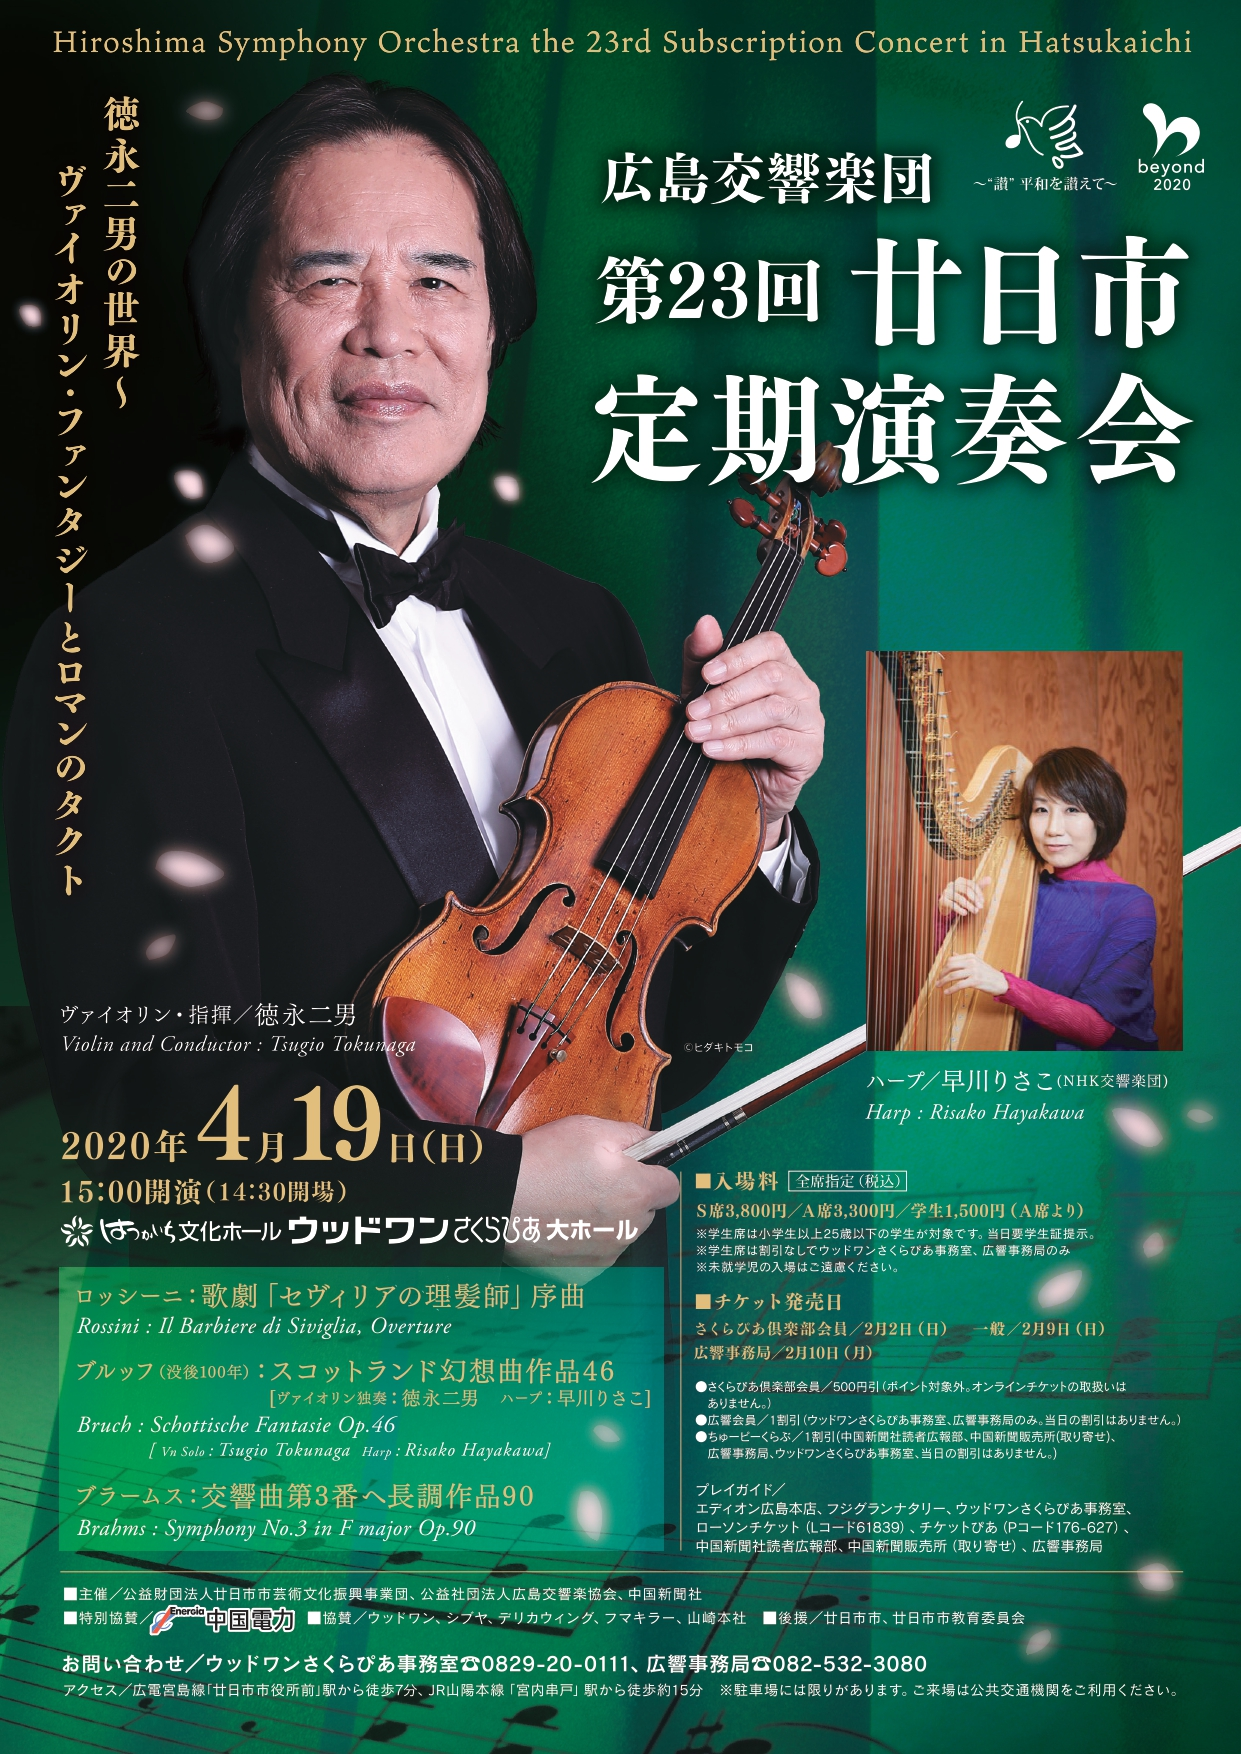 The 23rd Subscription Concert in HATSUKAICHI